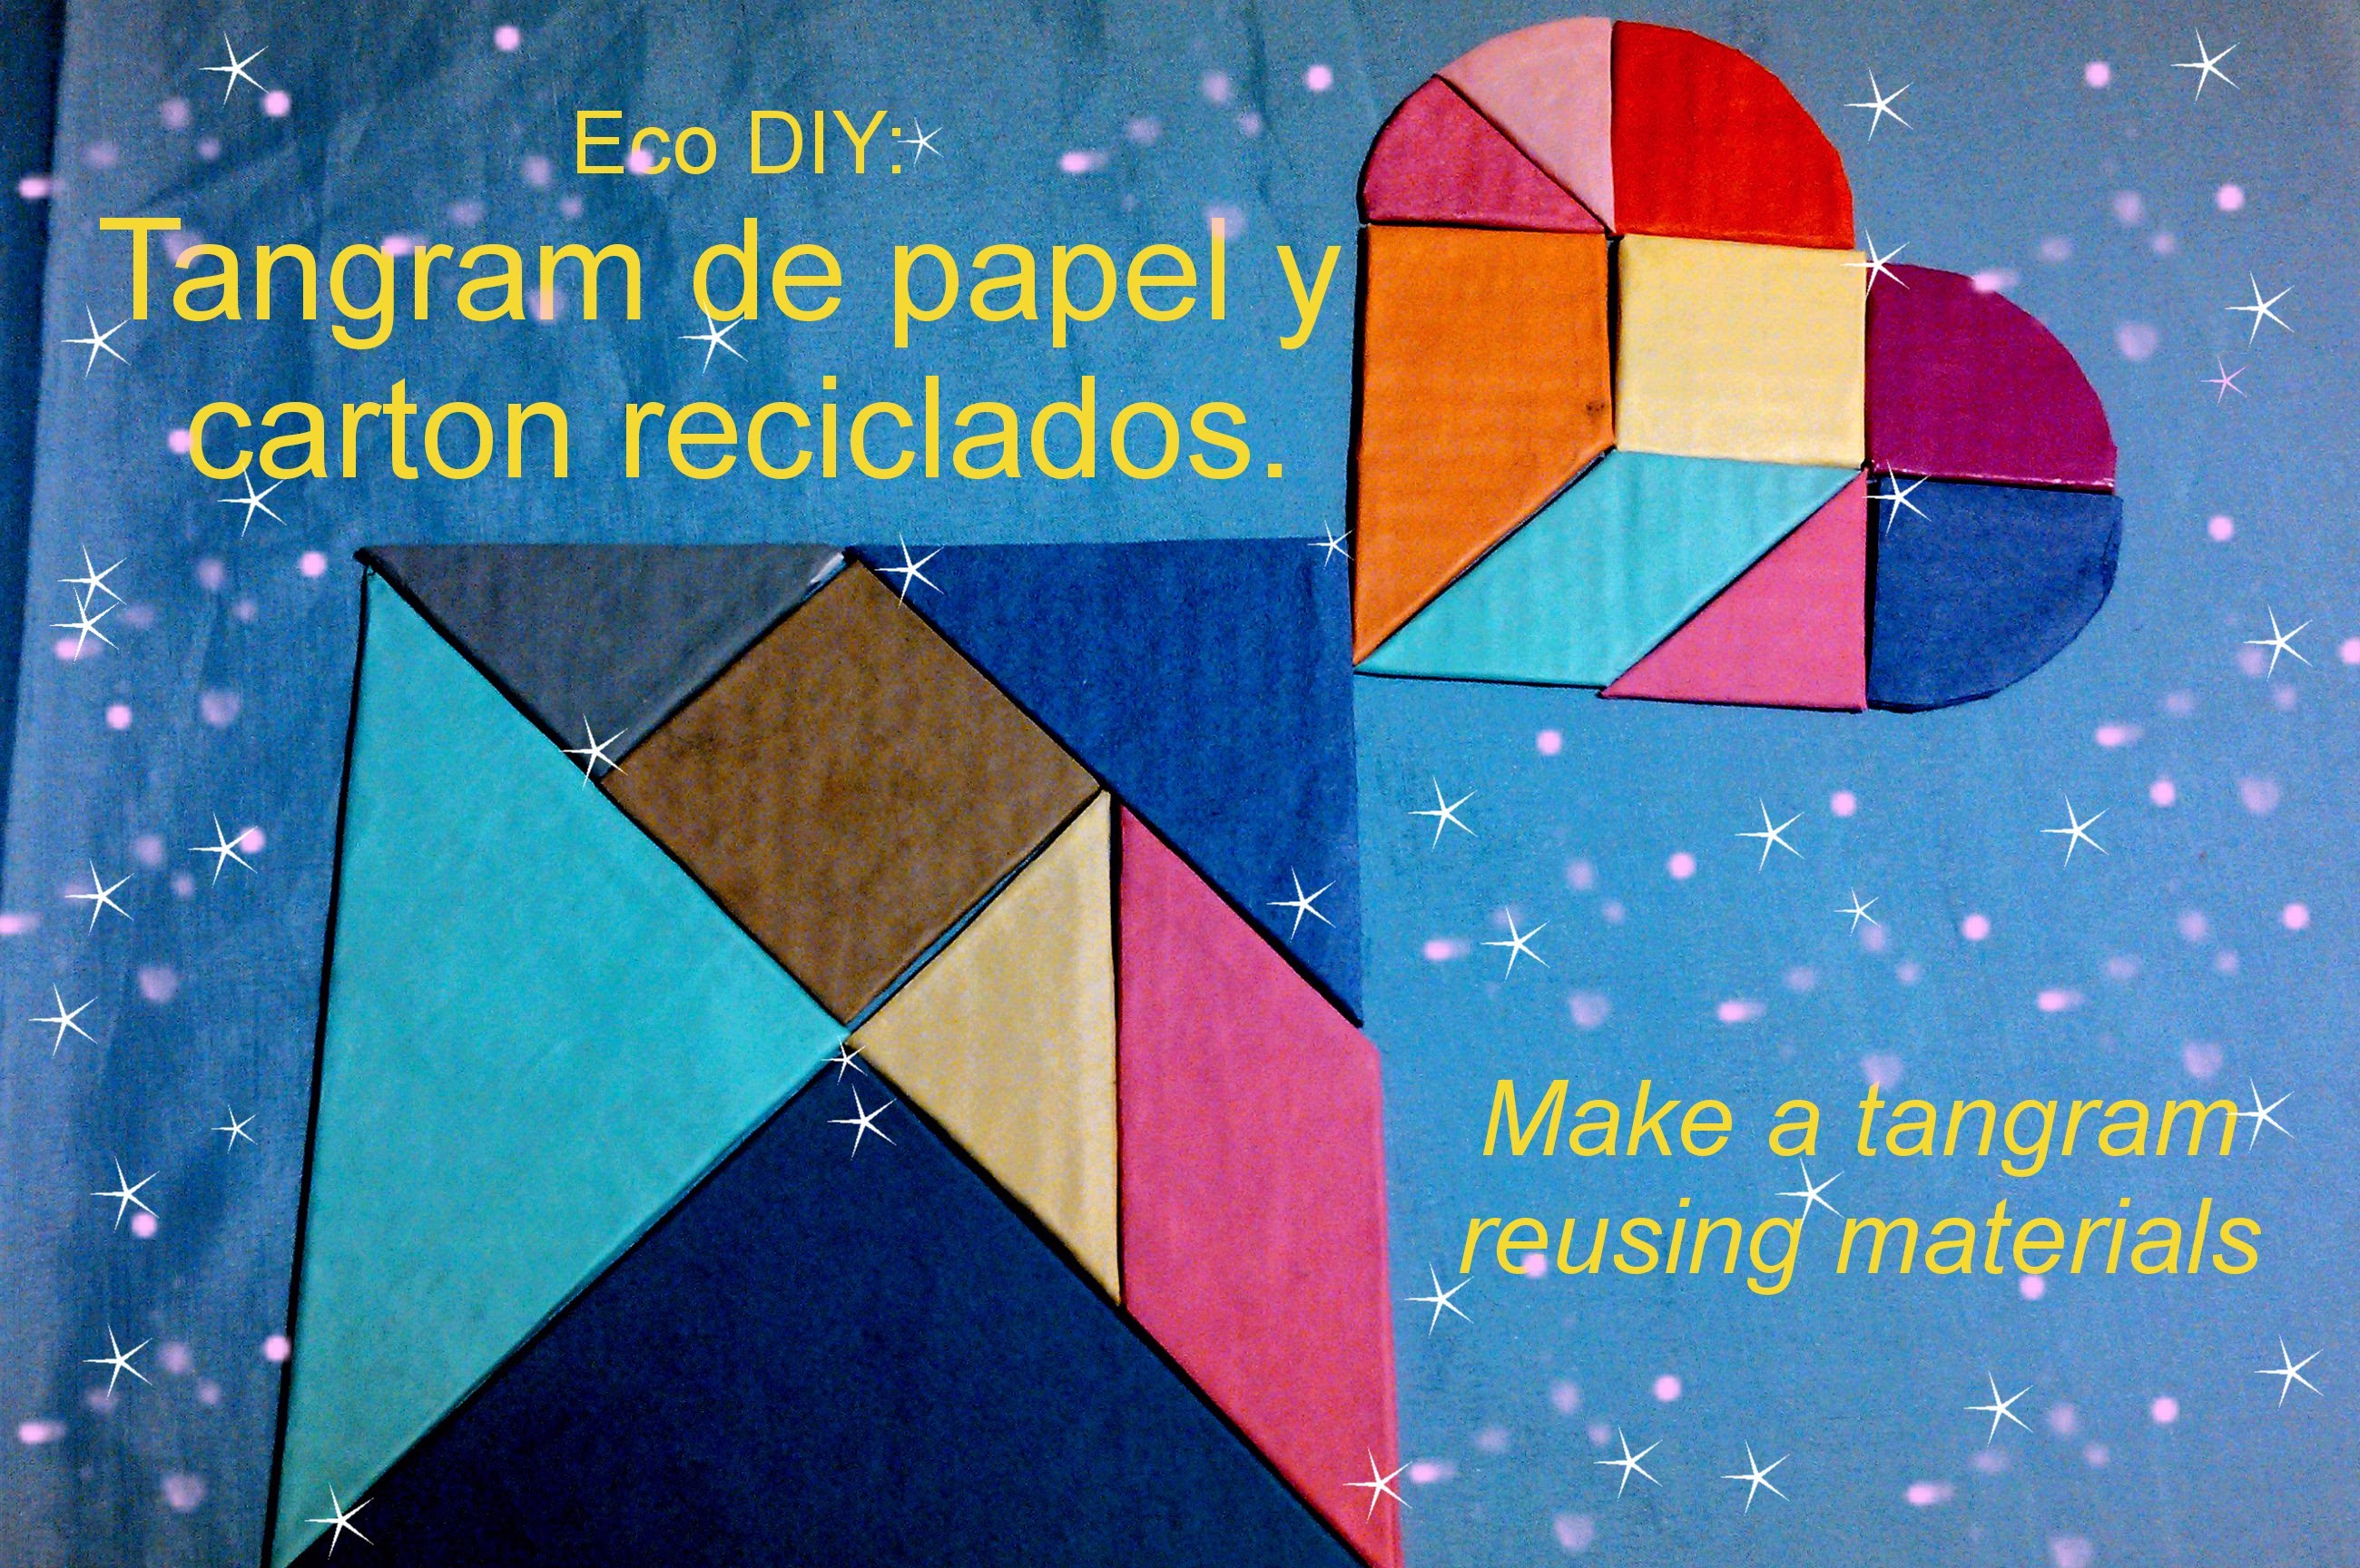 Eco DIY: Tangram de papel y carton reciclados. Make a tangram reusing materials